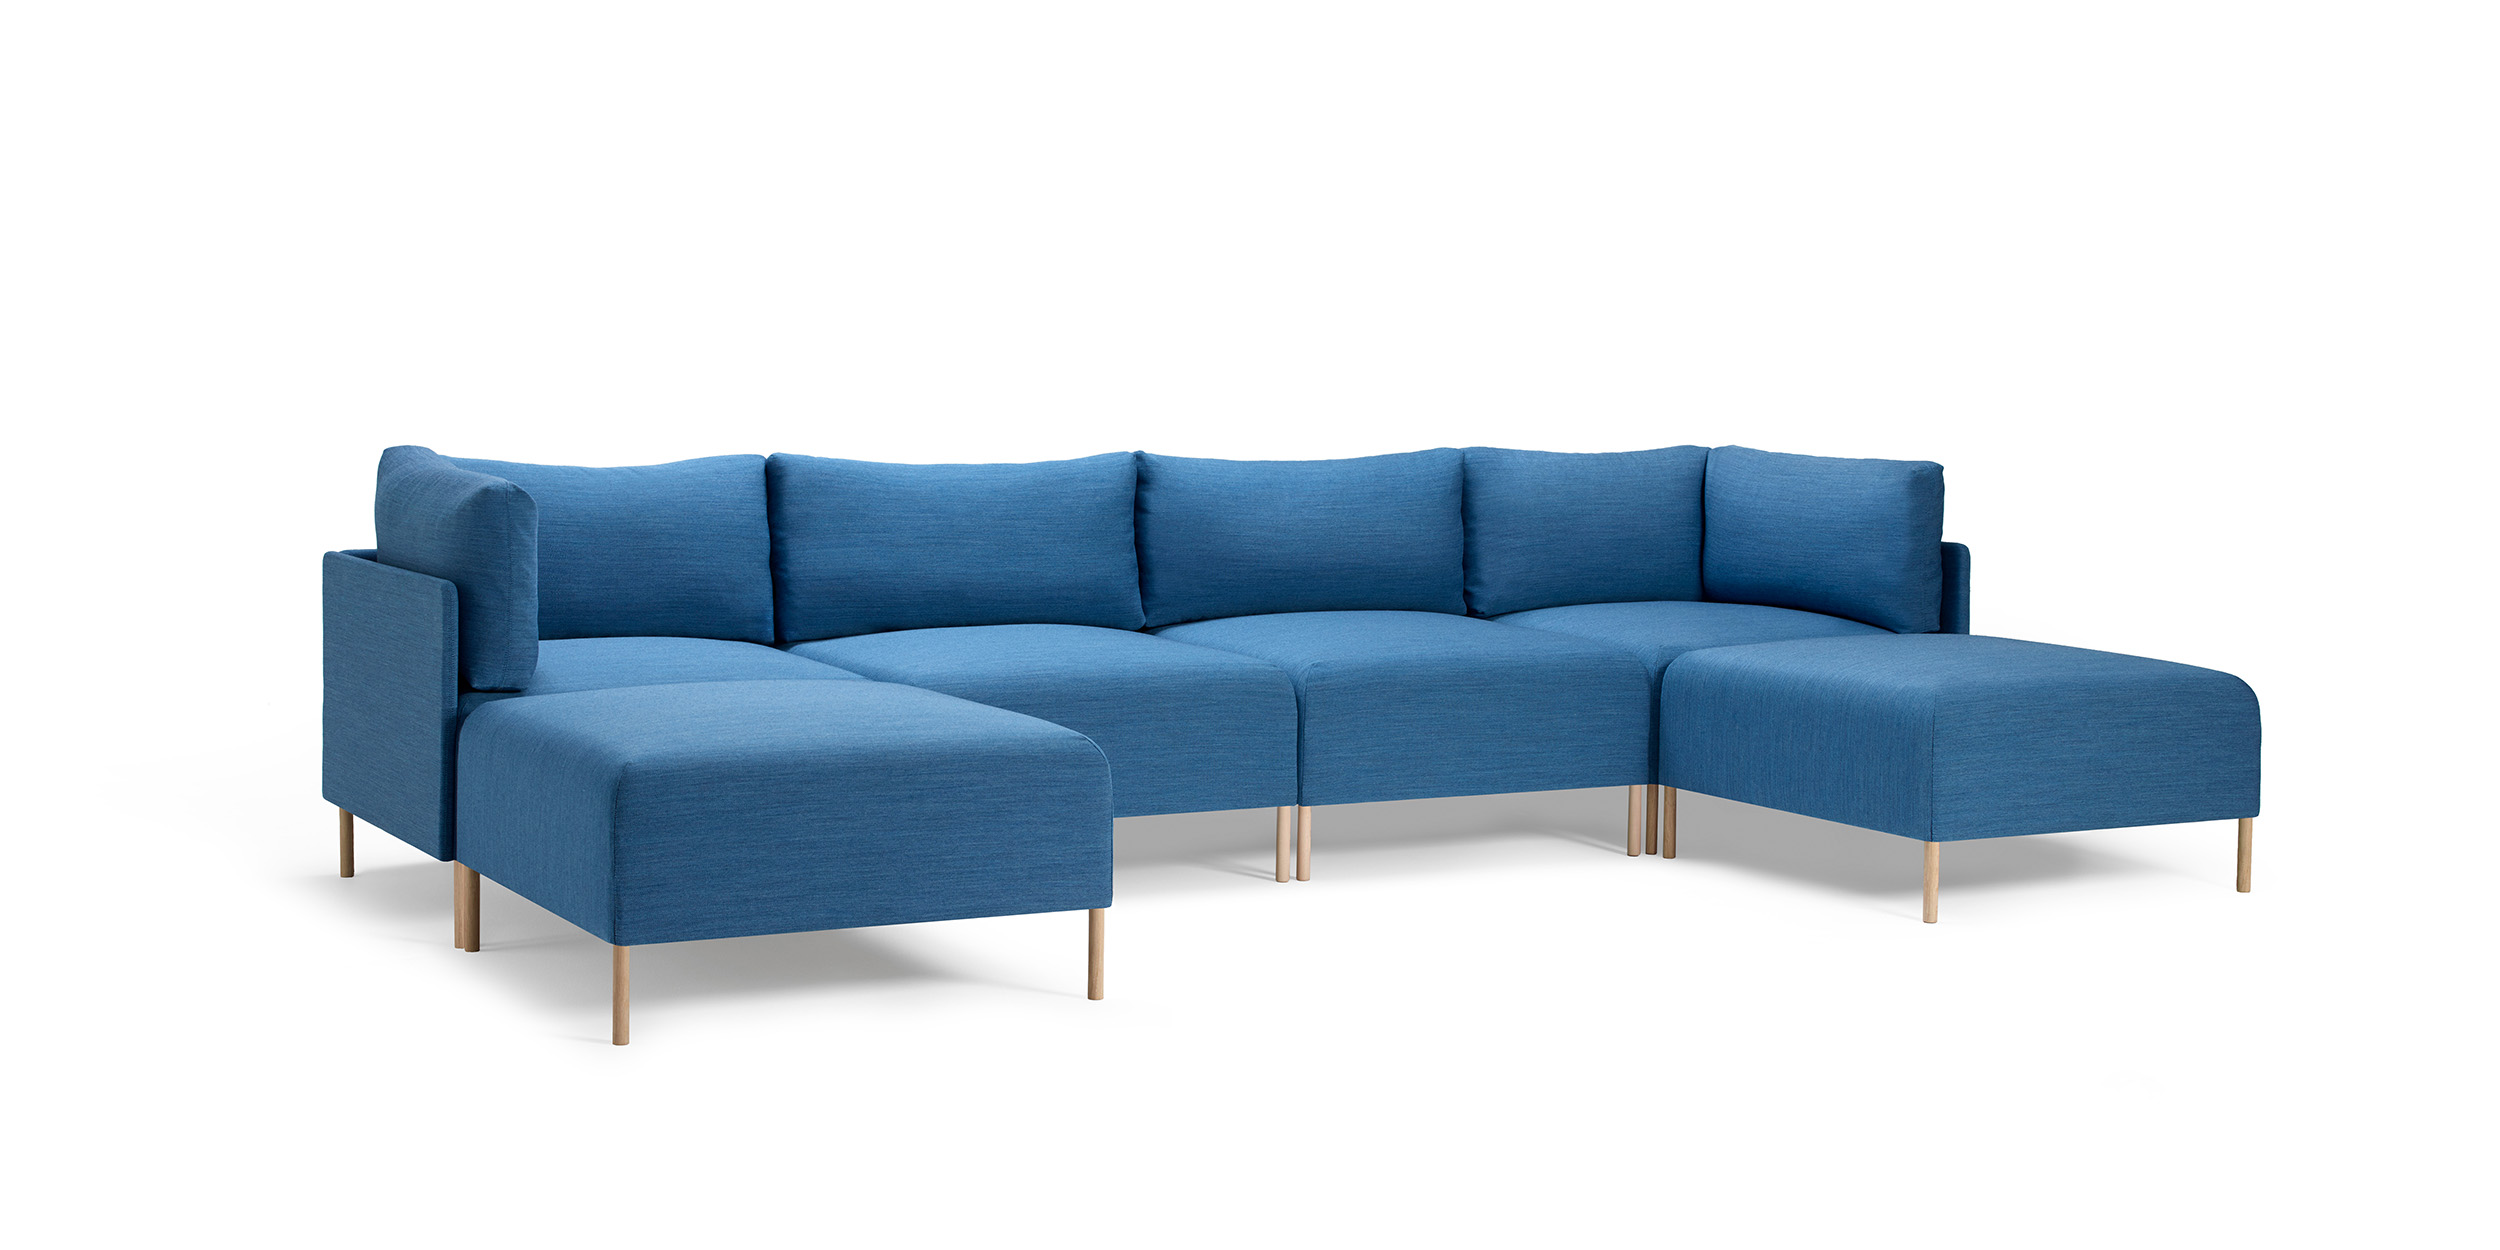 convertible modern cool sofa unique pin couch bunk in bed inspiration with